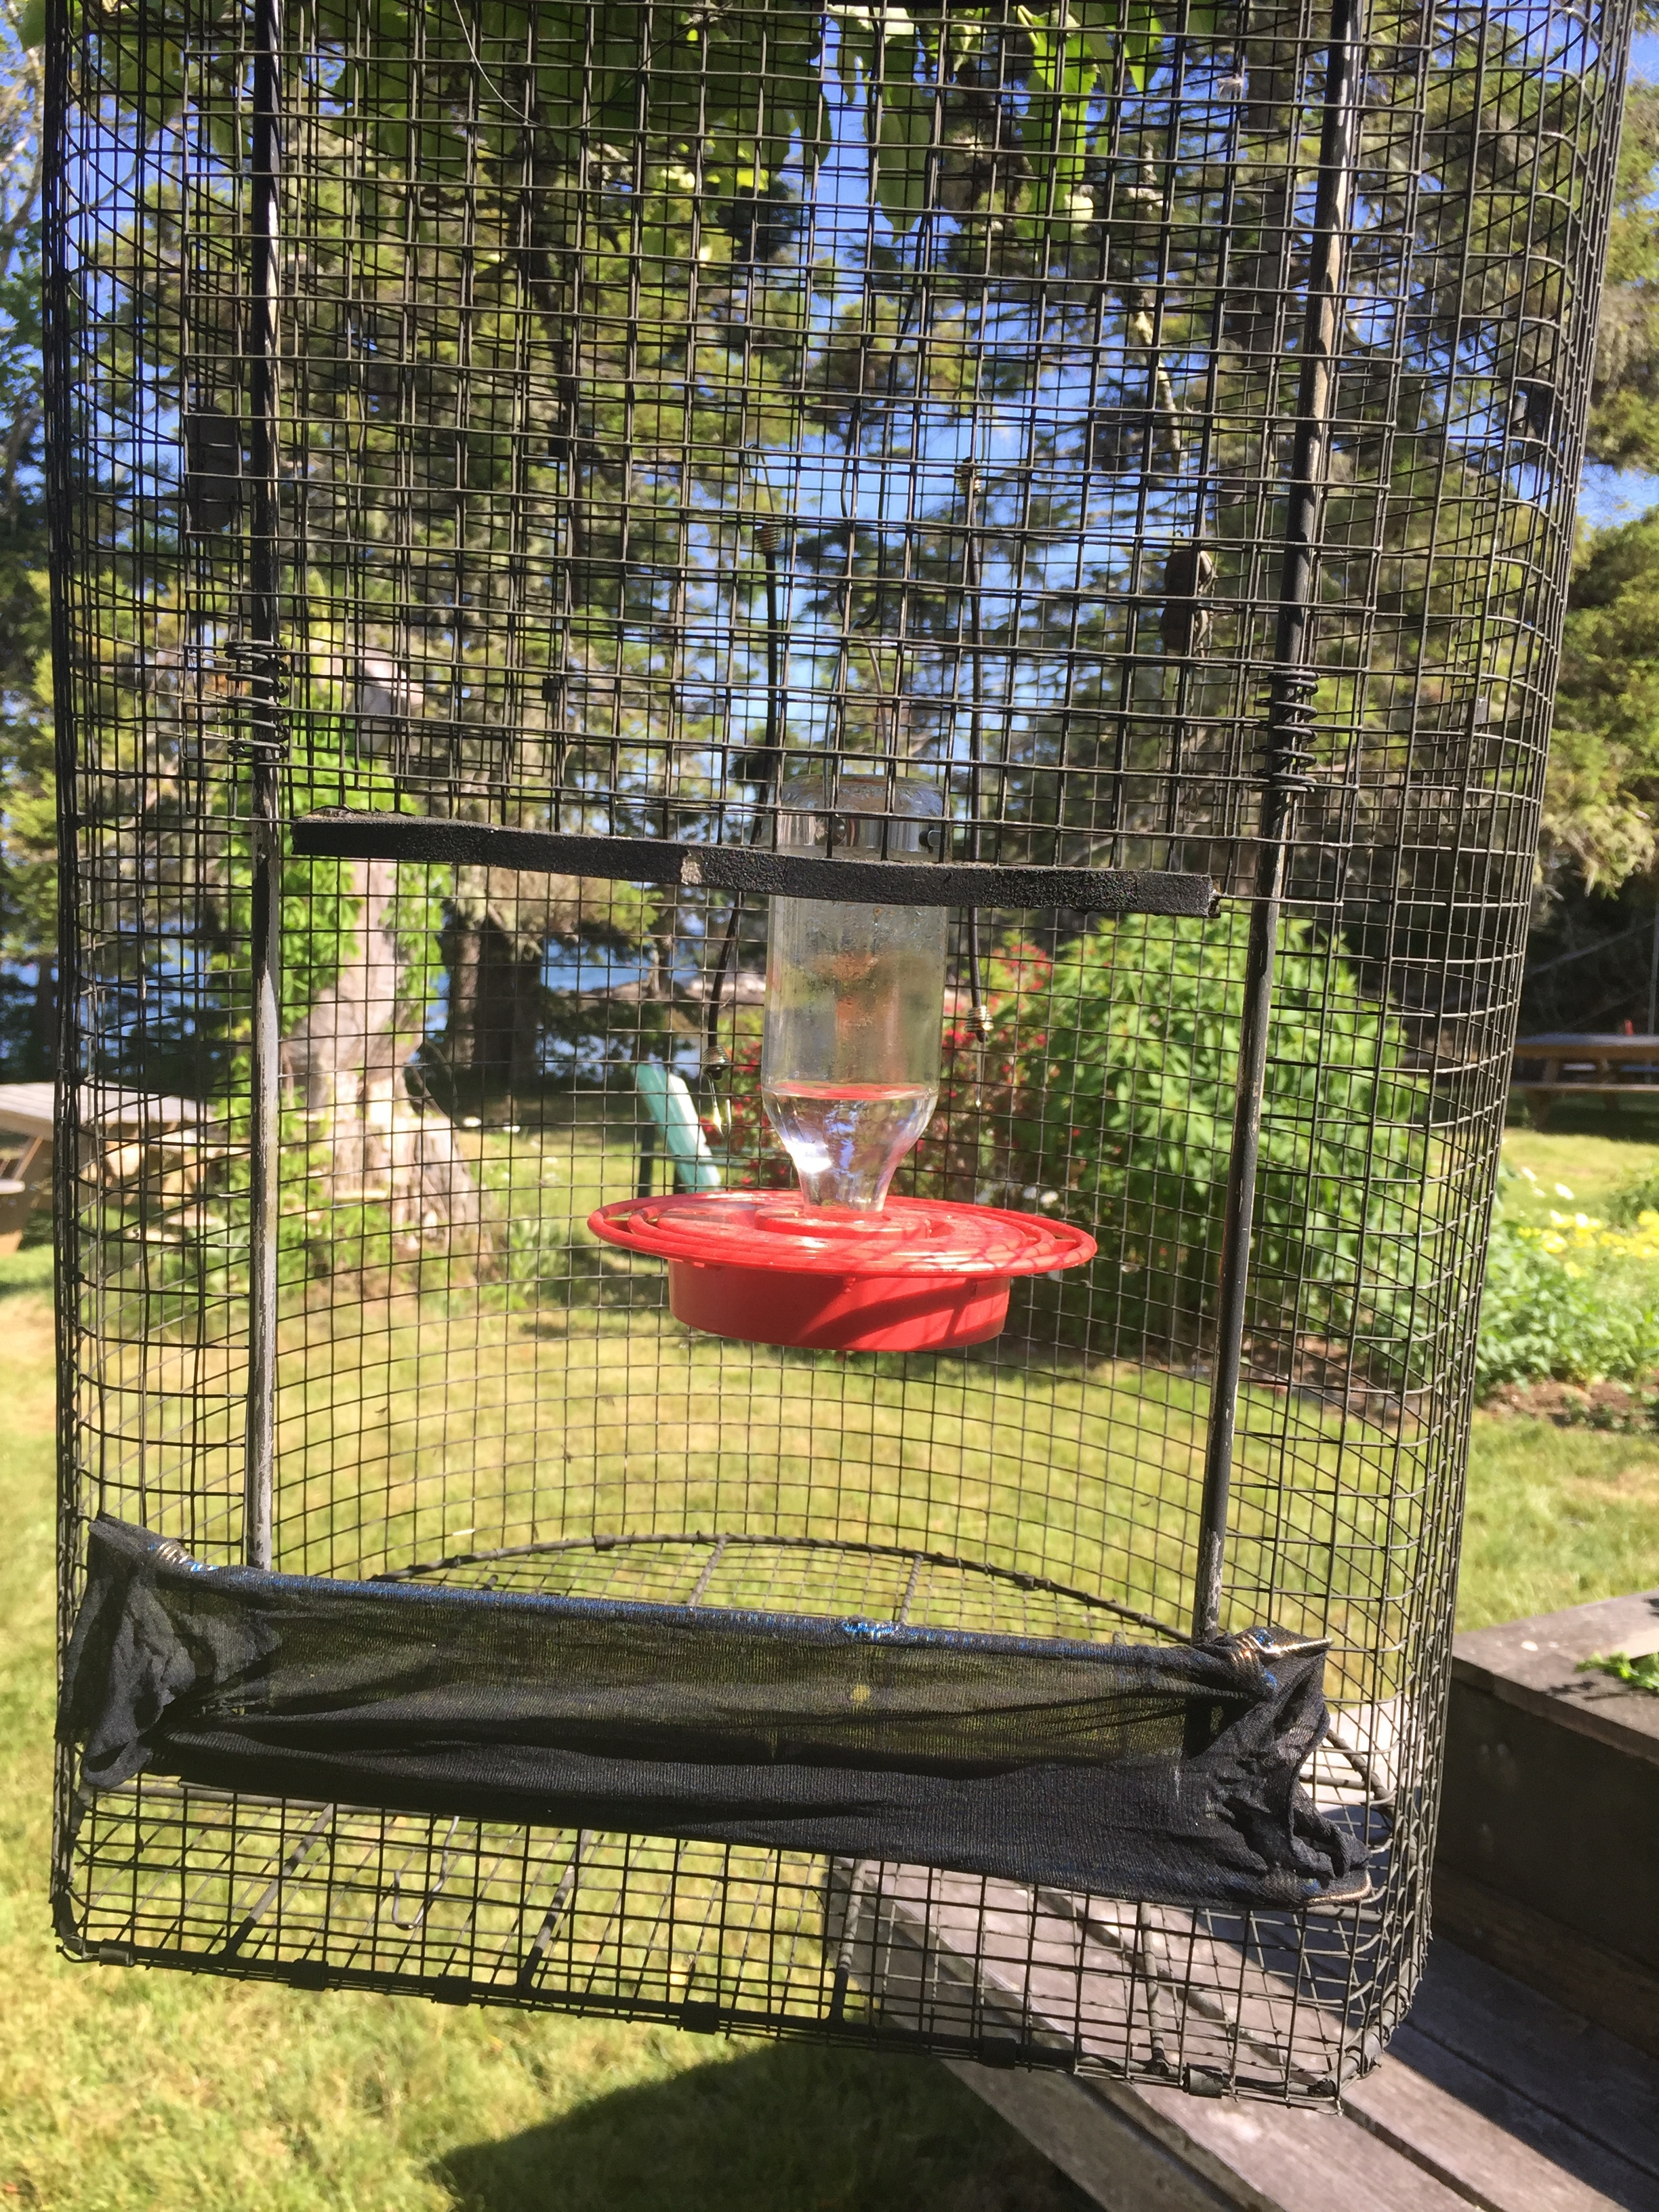 Gary's specially-made trap to capture hummingbirds safely